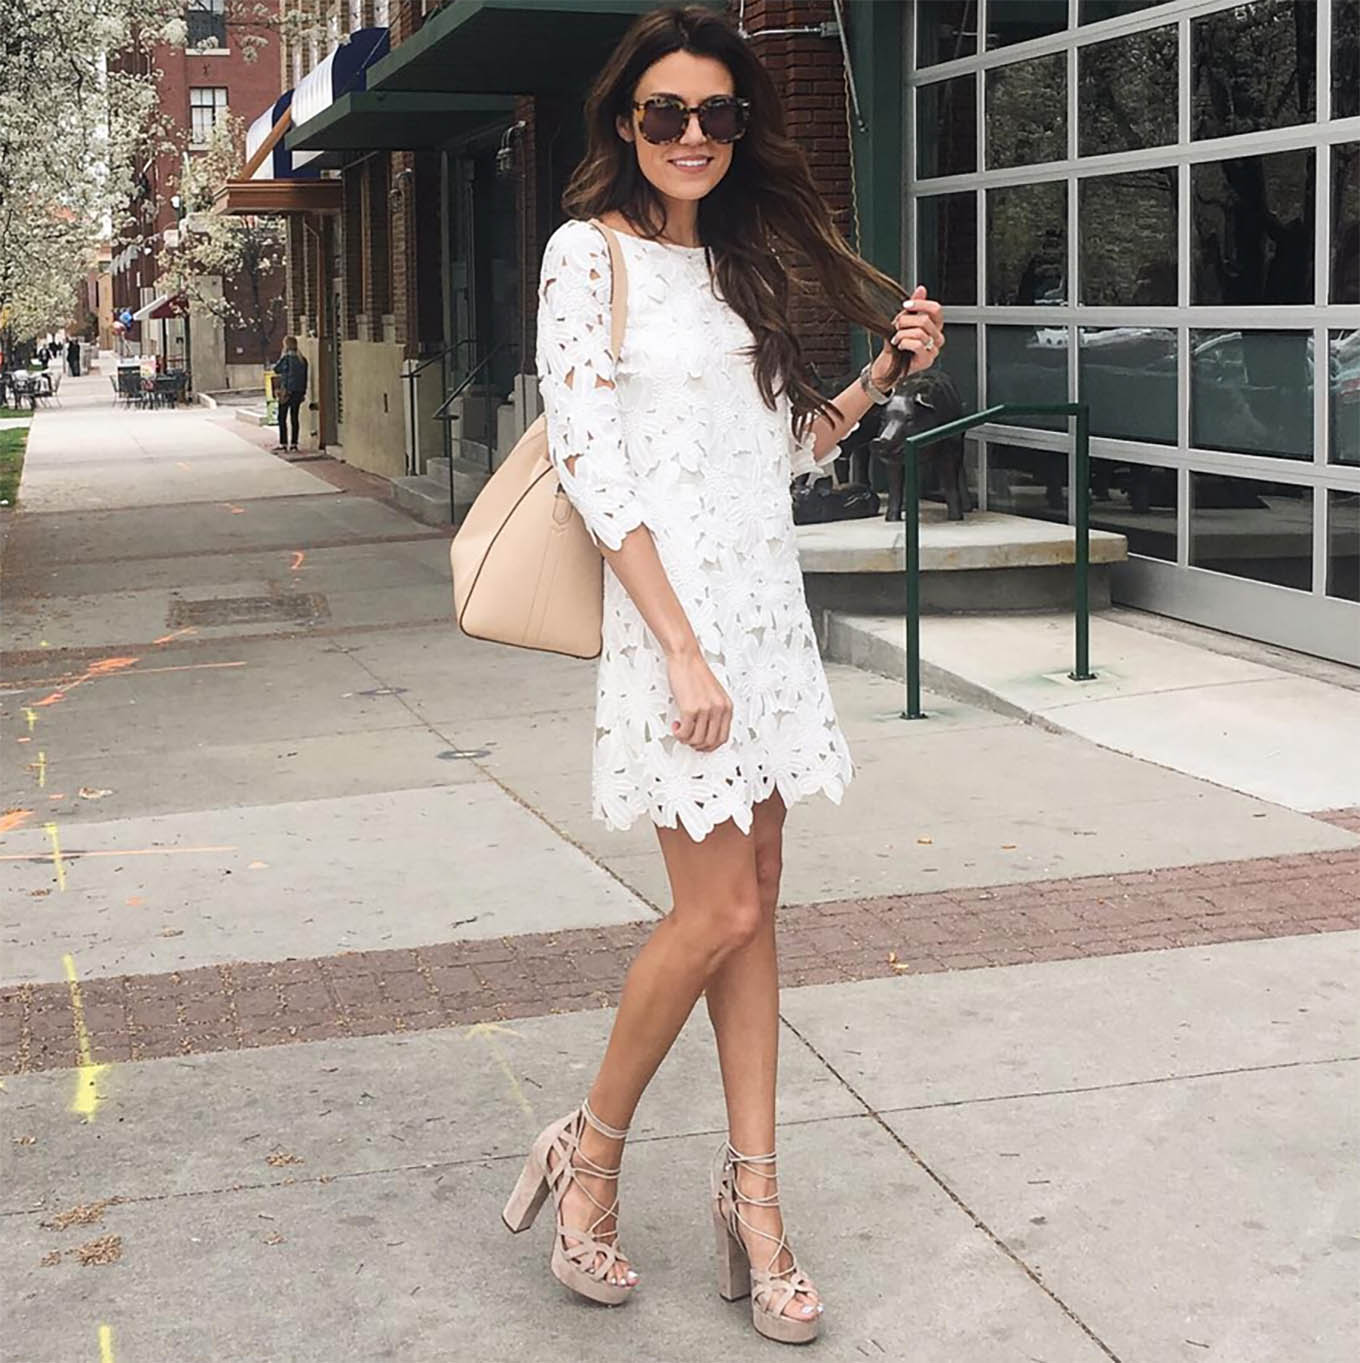 Christine Andrew looks fresh as a daisy in this beautiful white dress with cut away detailing. Matched with strapy nude sandals, this dress creates a gorgeous summery feel which we love! Dress: Nordstrom, Shoes: M Gemi.